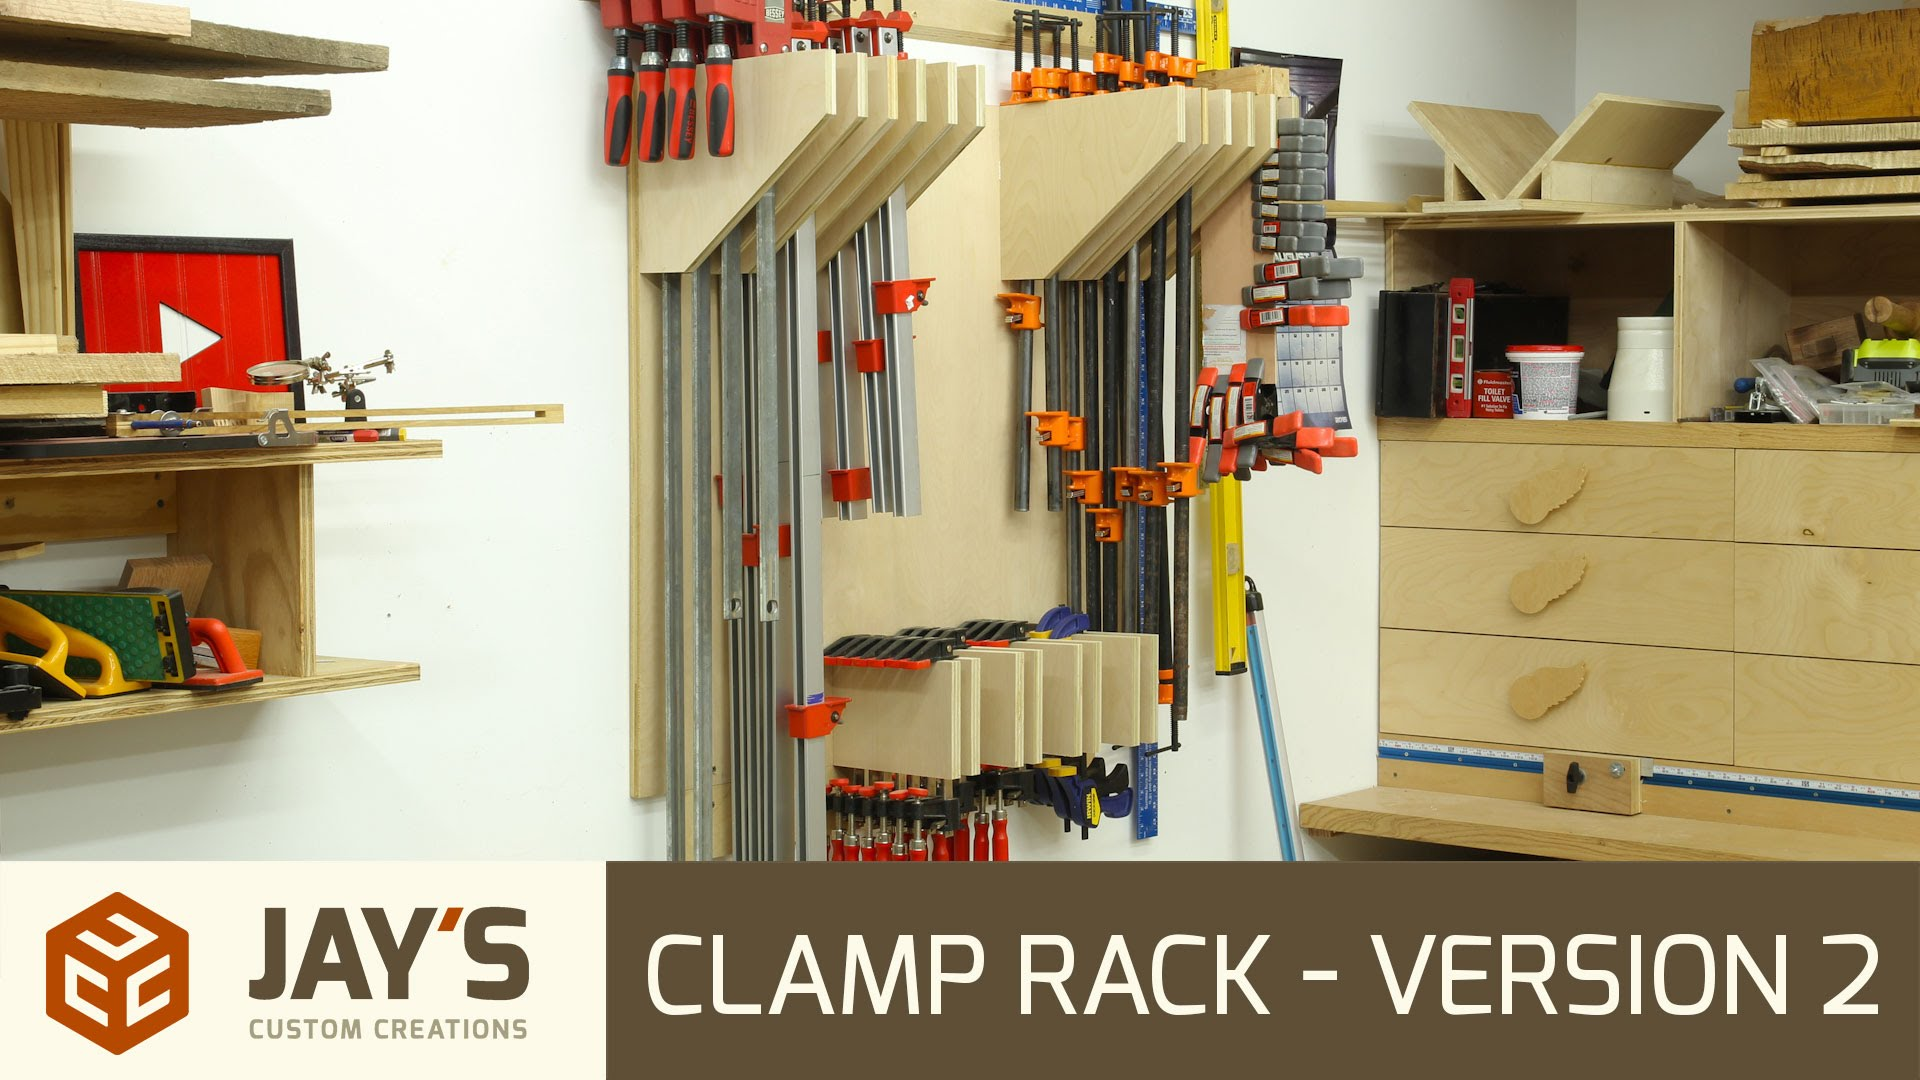 Clamp Rack Version 2 Jays Custom Creations